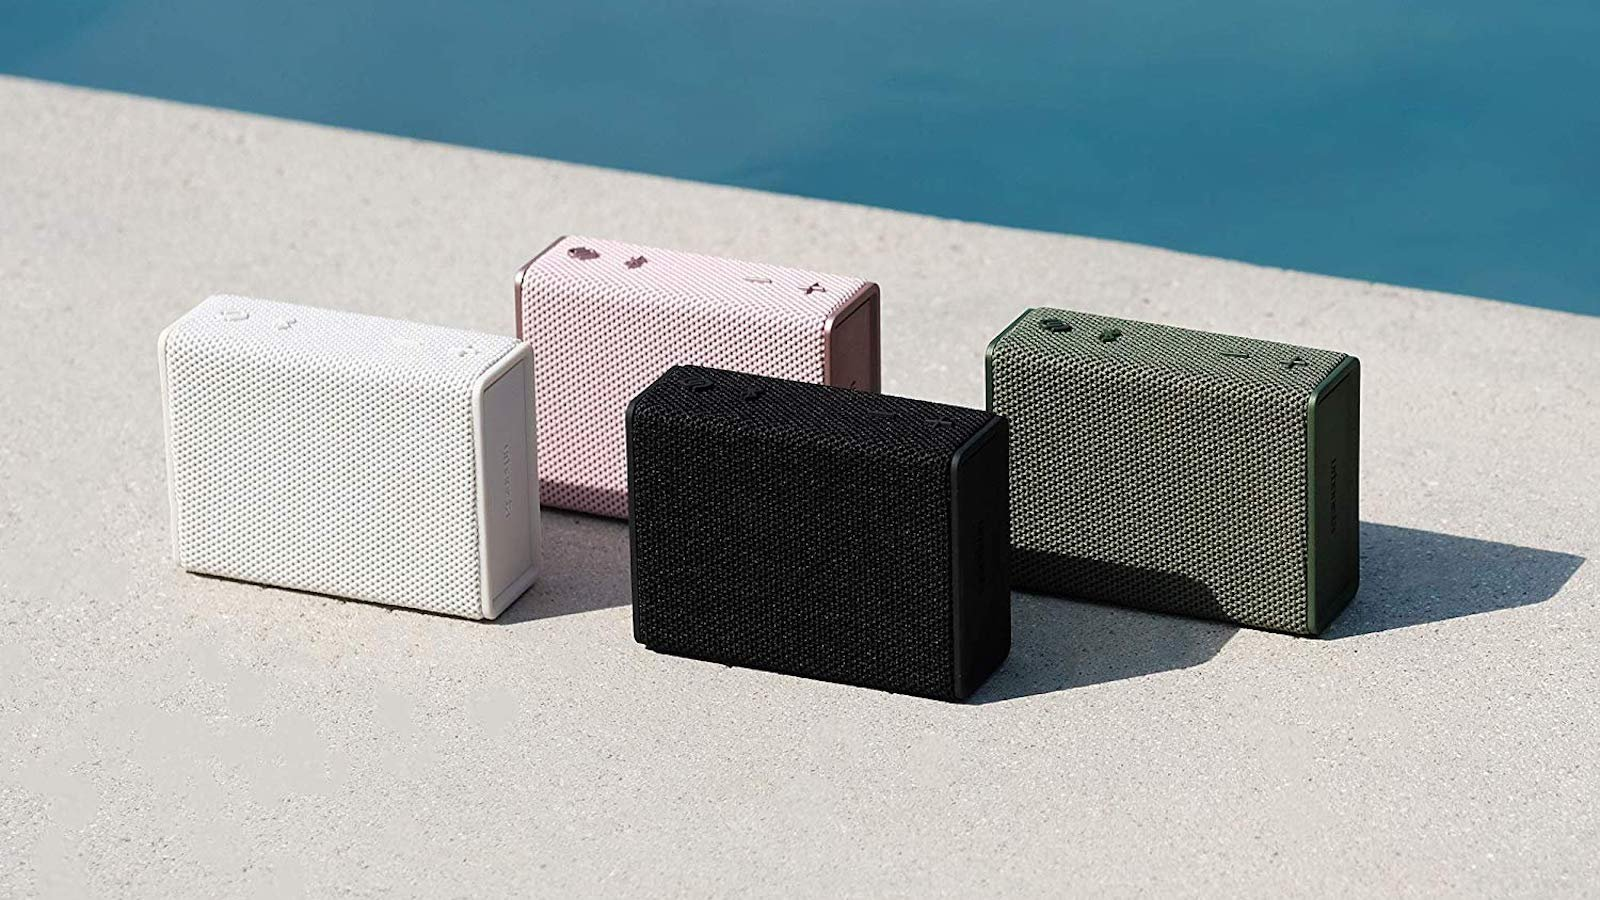 Urbanista Sydney pocket-size speaker gives you as much as five hours of playtime